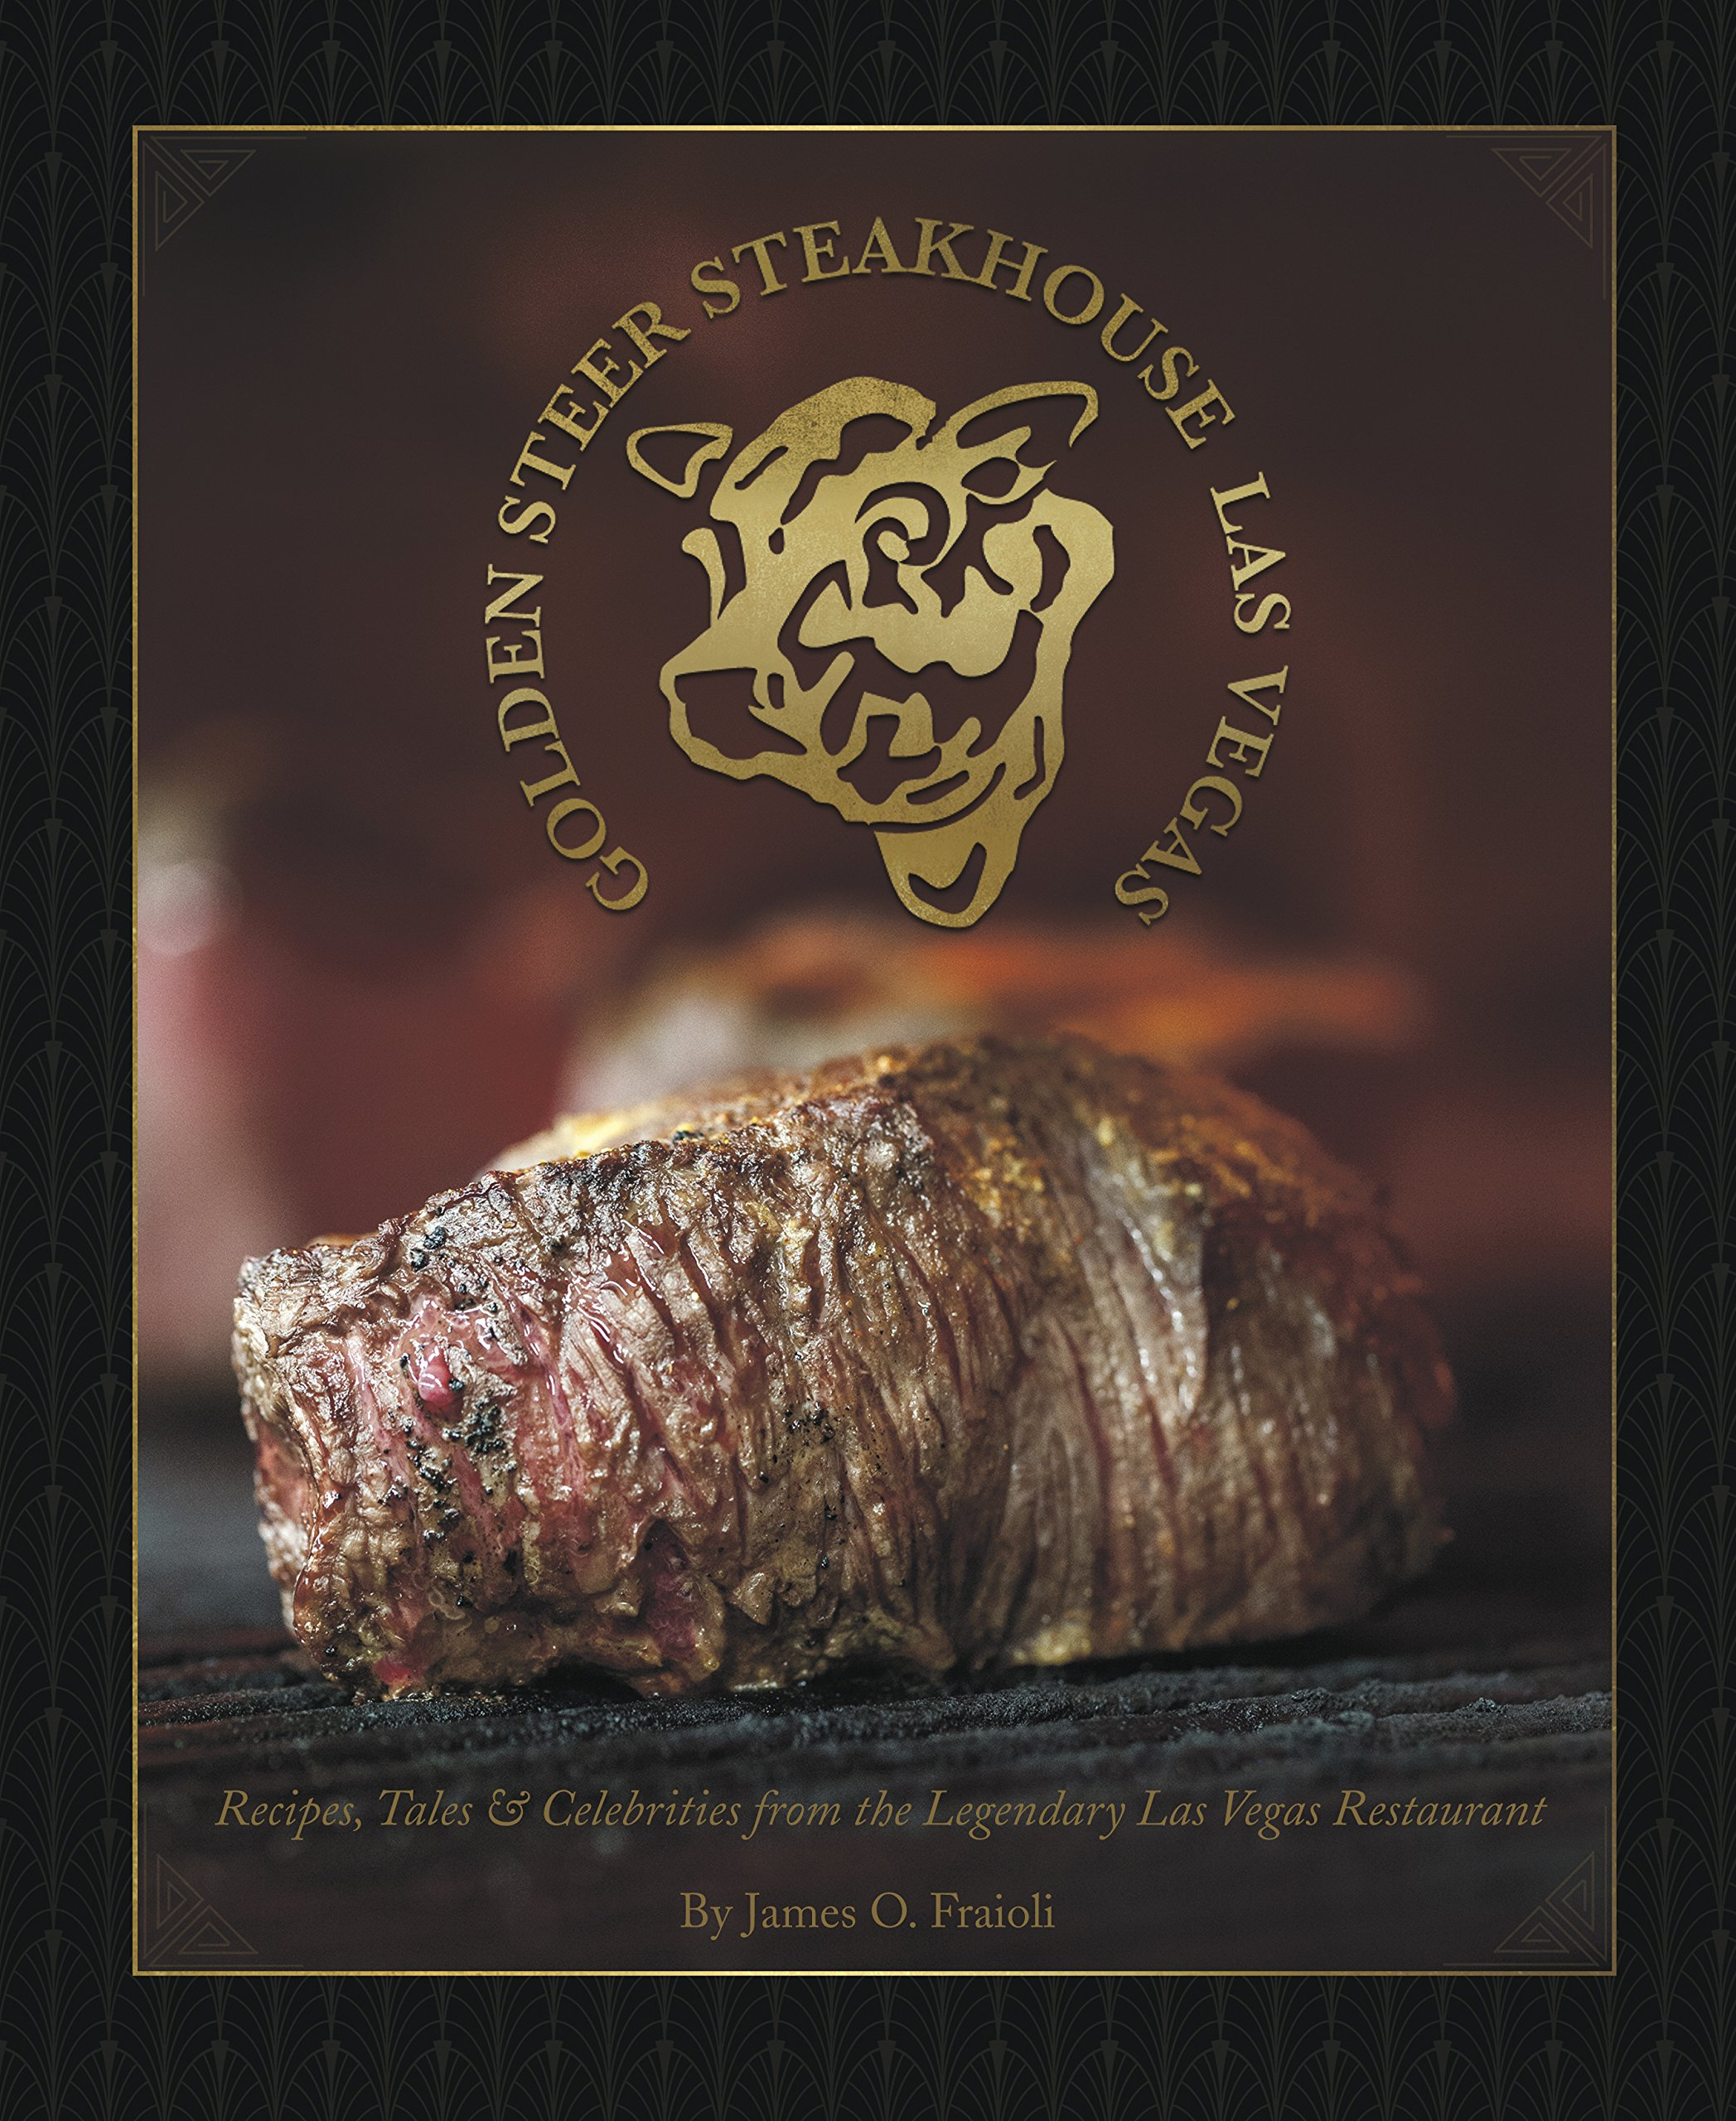 The Golden Steer Steakhouse: Recipes, Tales & Celebrities from the ...